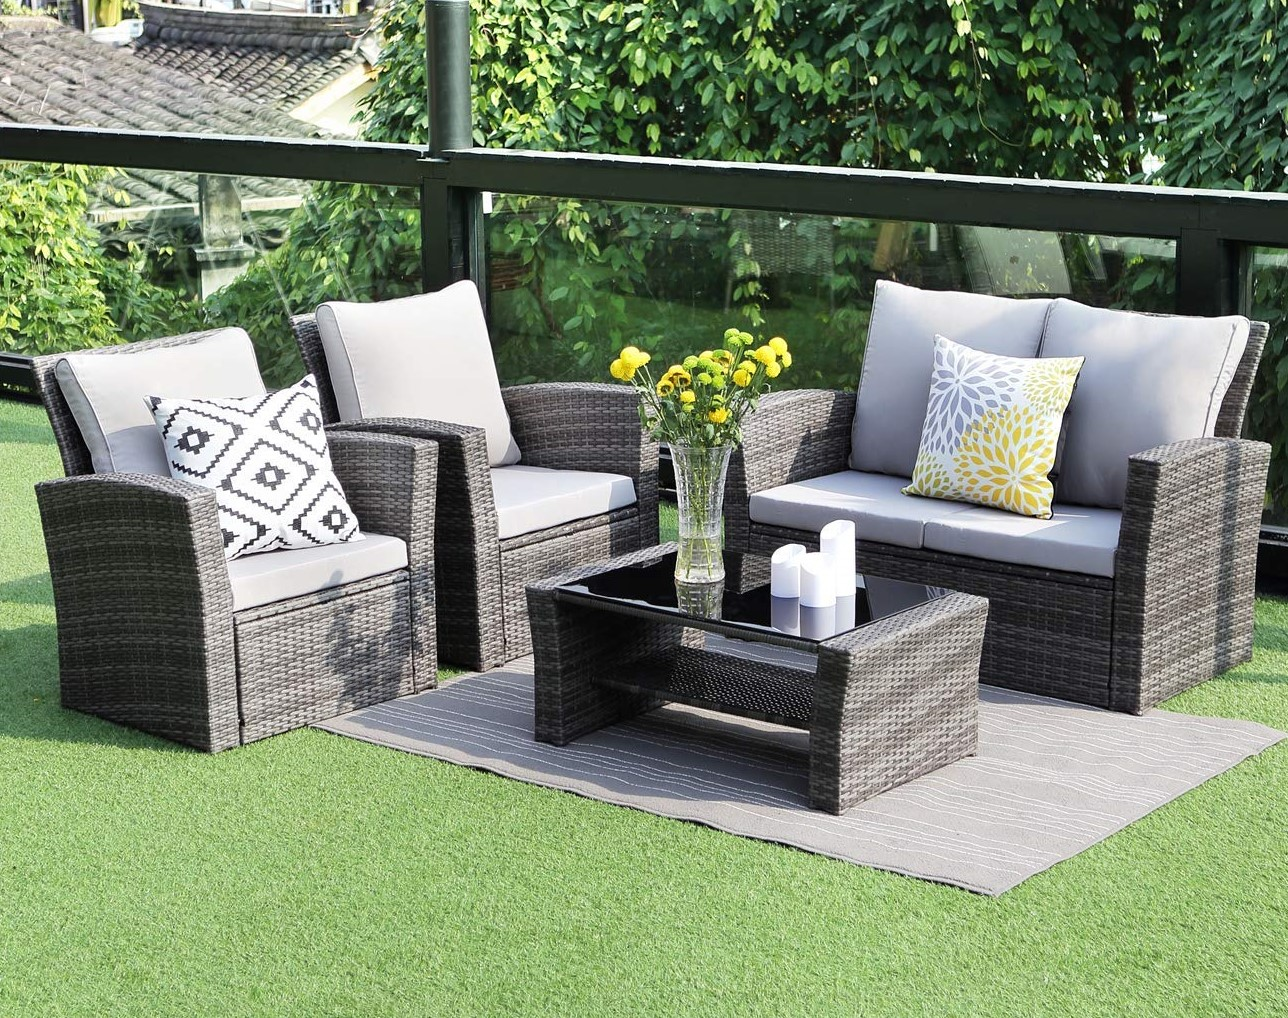 Best Outdoor Sectional Sofa Review | 2020 | Great Price ...